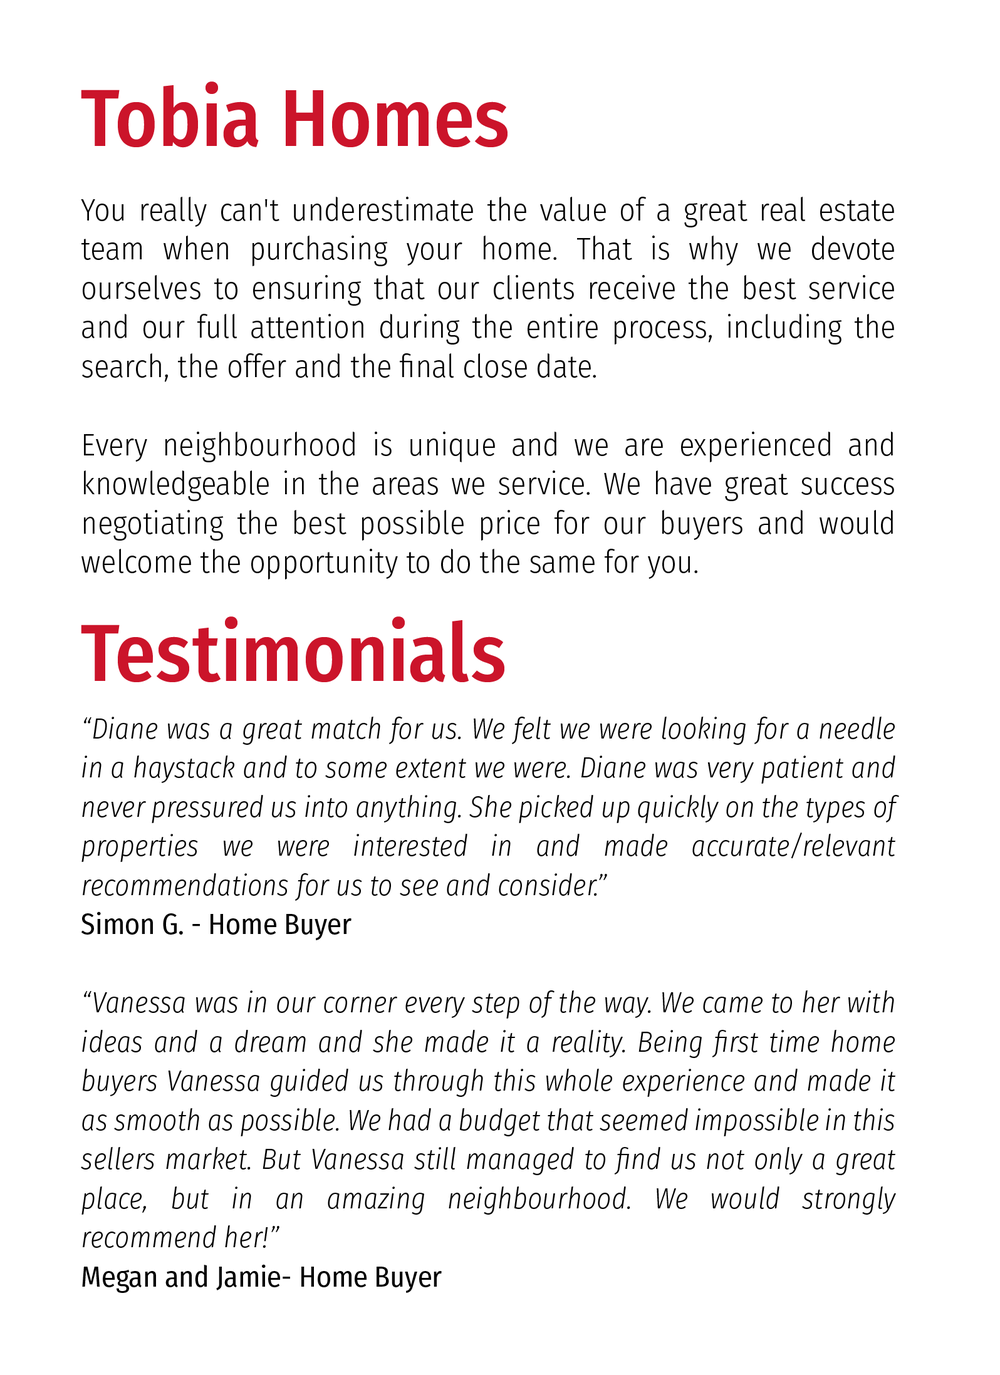 Tobia_Homes_Presentation-Digital_Download-BUYERS-0618_Tobia Homes.png